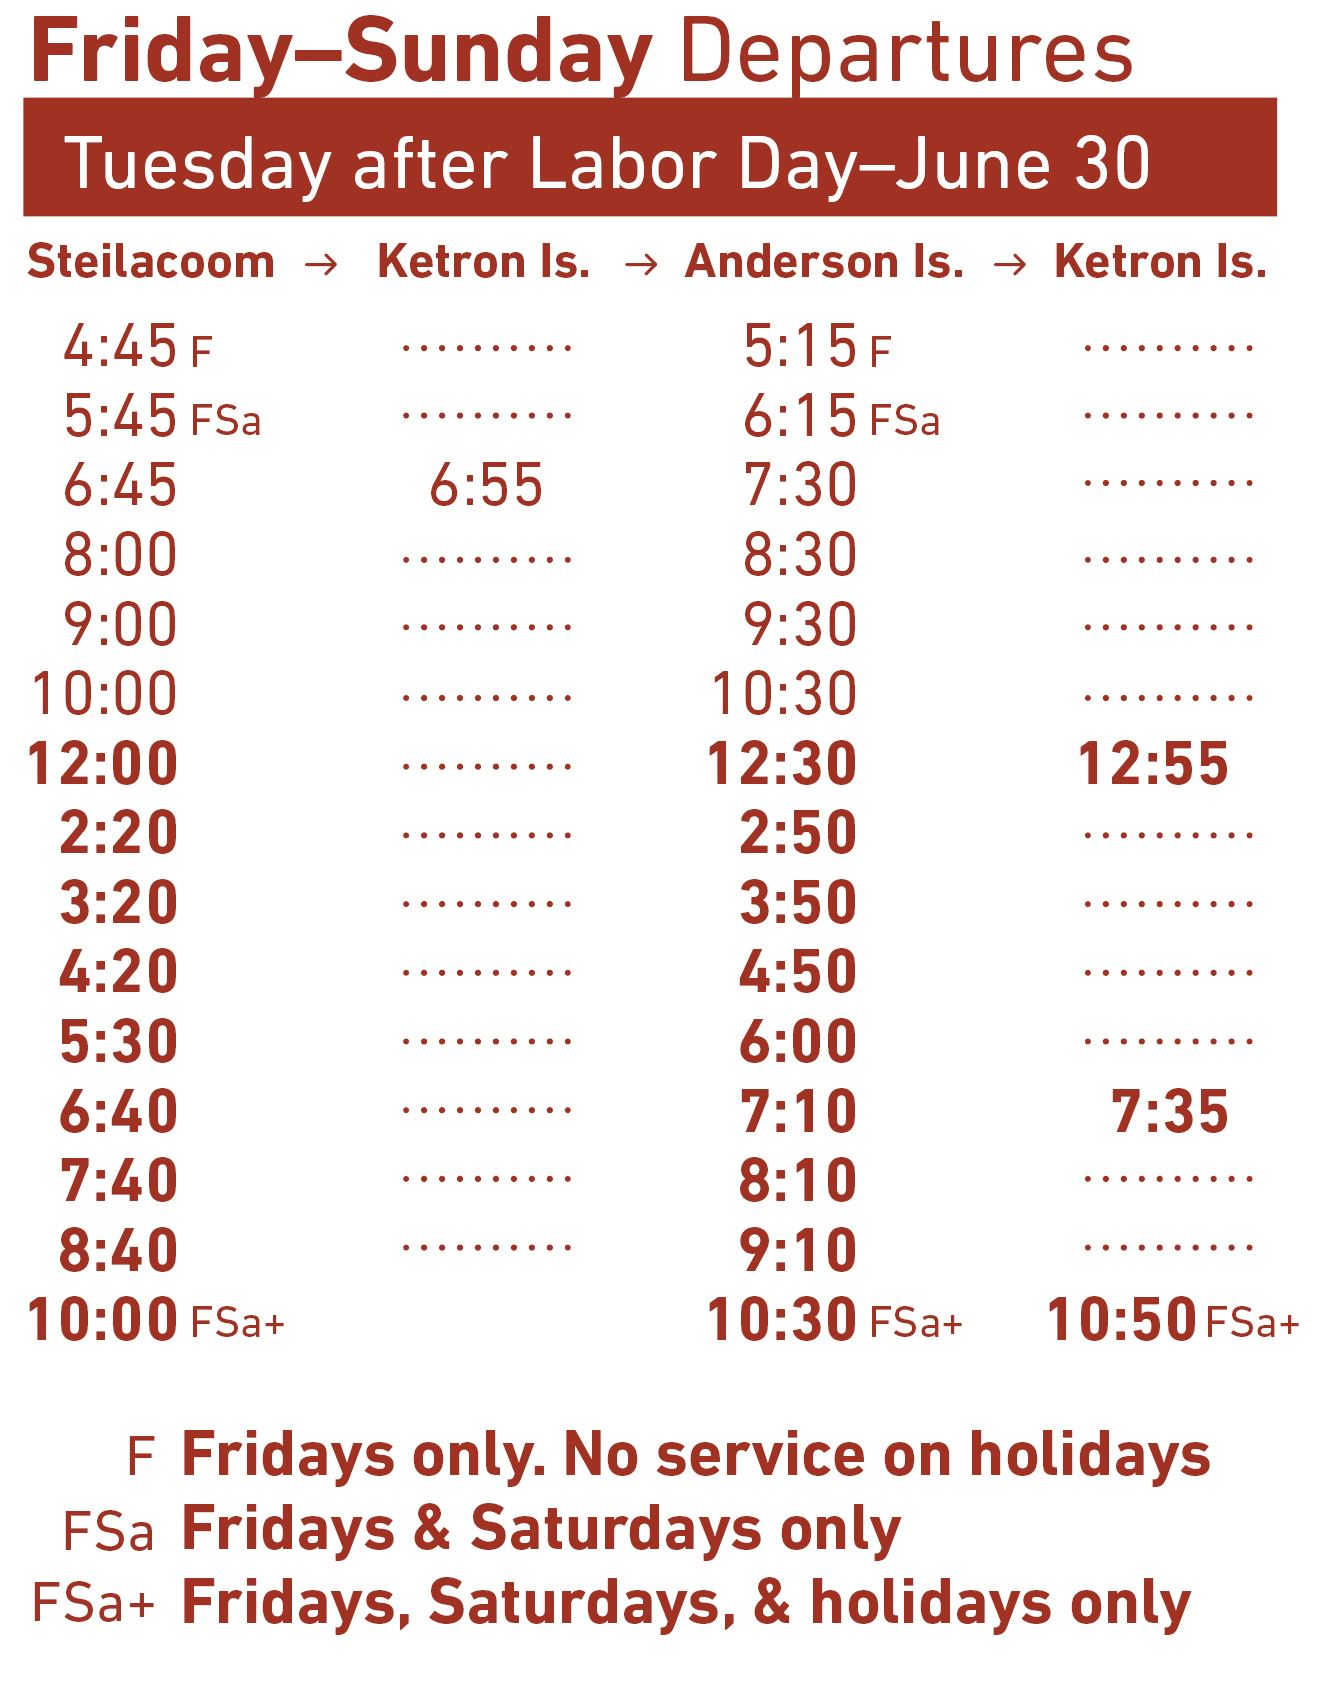 image of ferry schedule Friday-Sunday